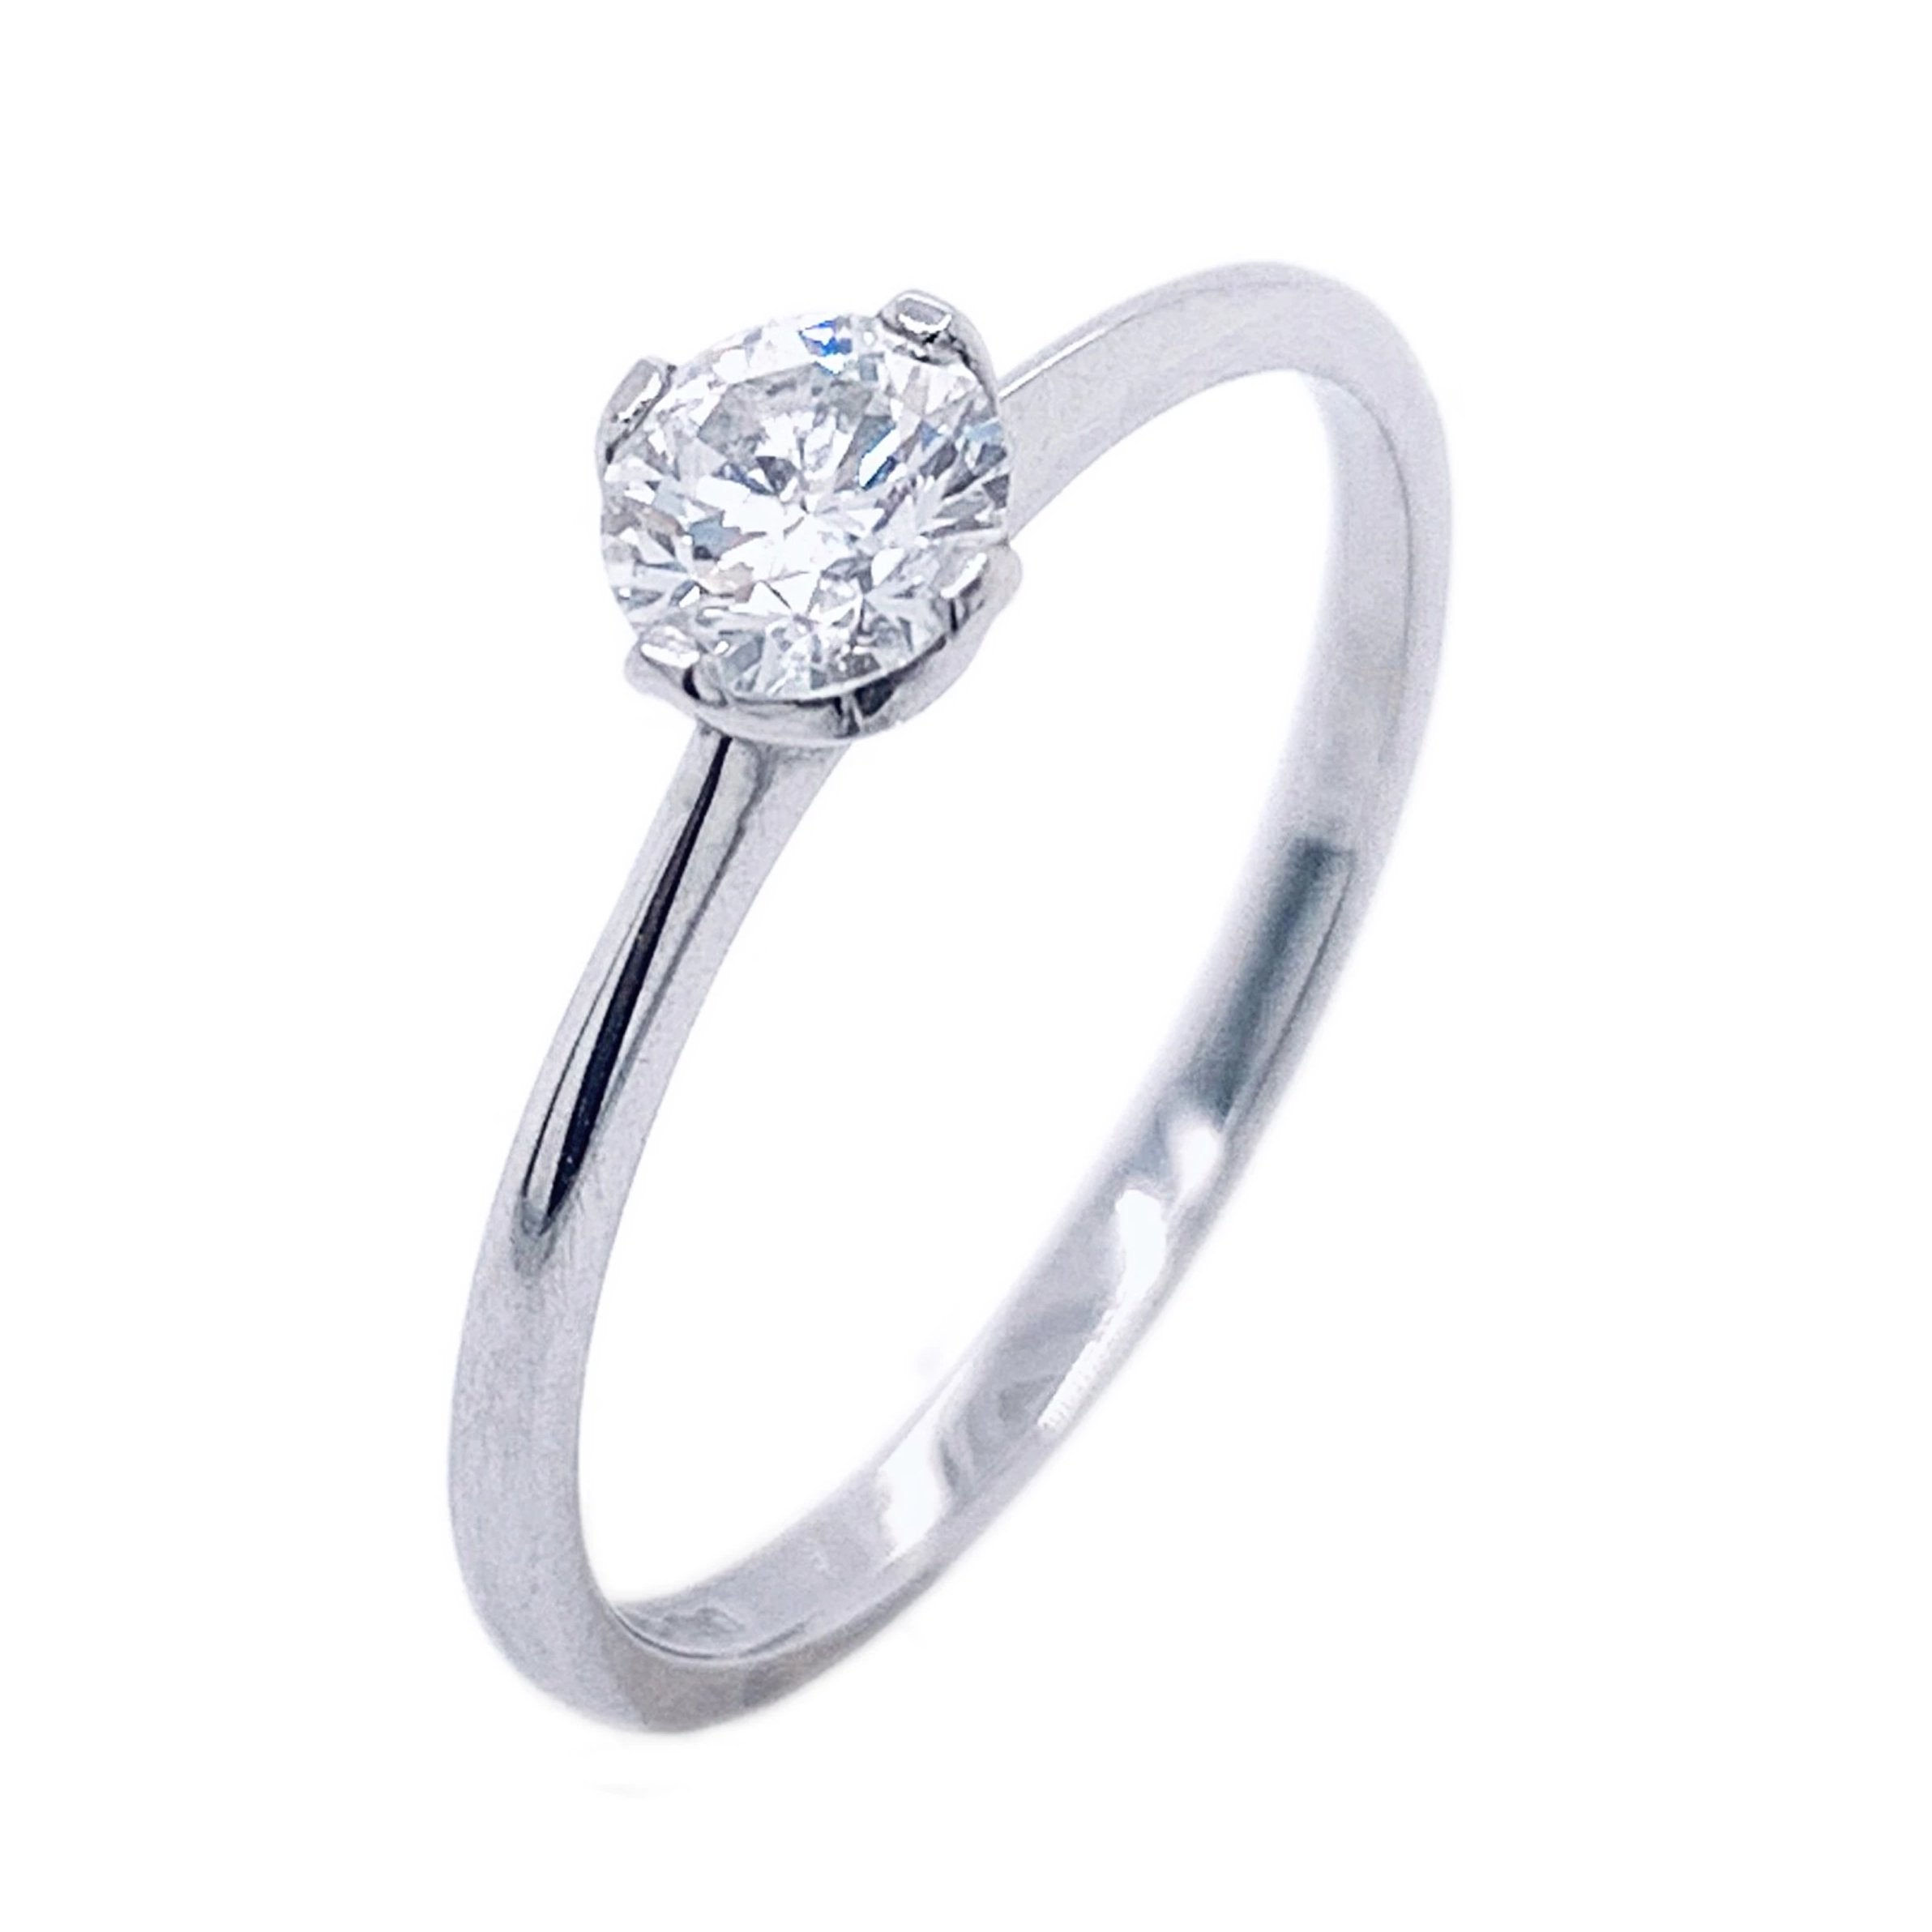 Platinum Four Claw Lotus Brilliant Cut Diamond Ring - Andrew Scott